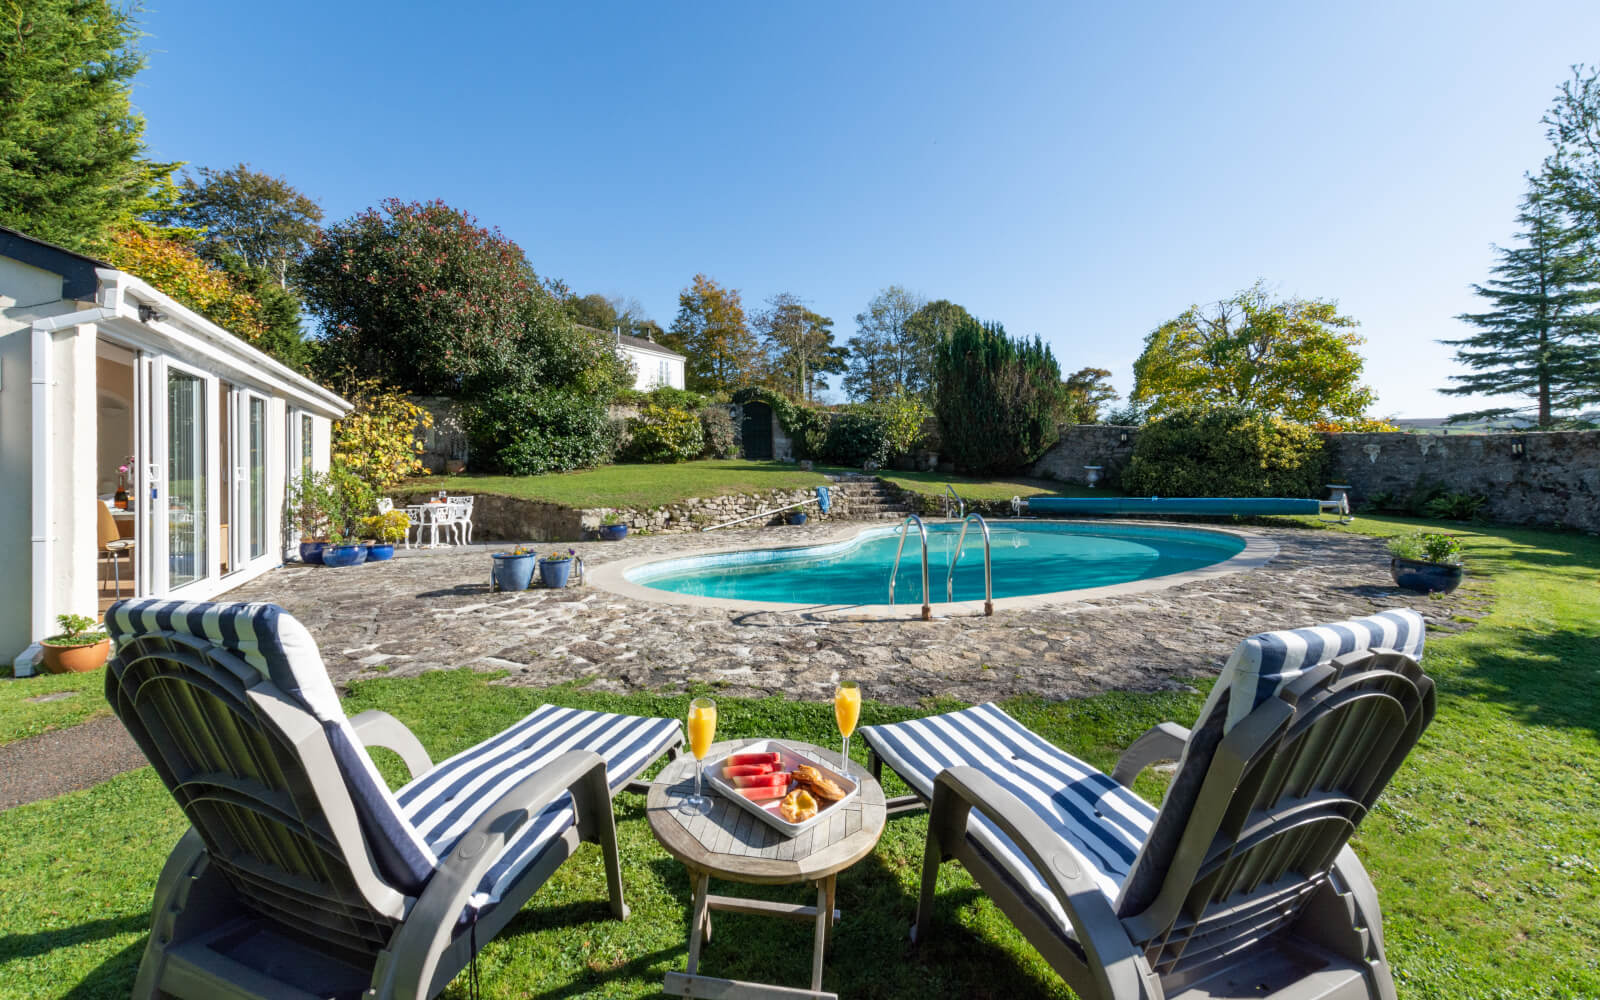 Holiday Cottages With Swimming Pools In The Cairngorms To Rent - Save up to 60%